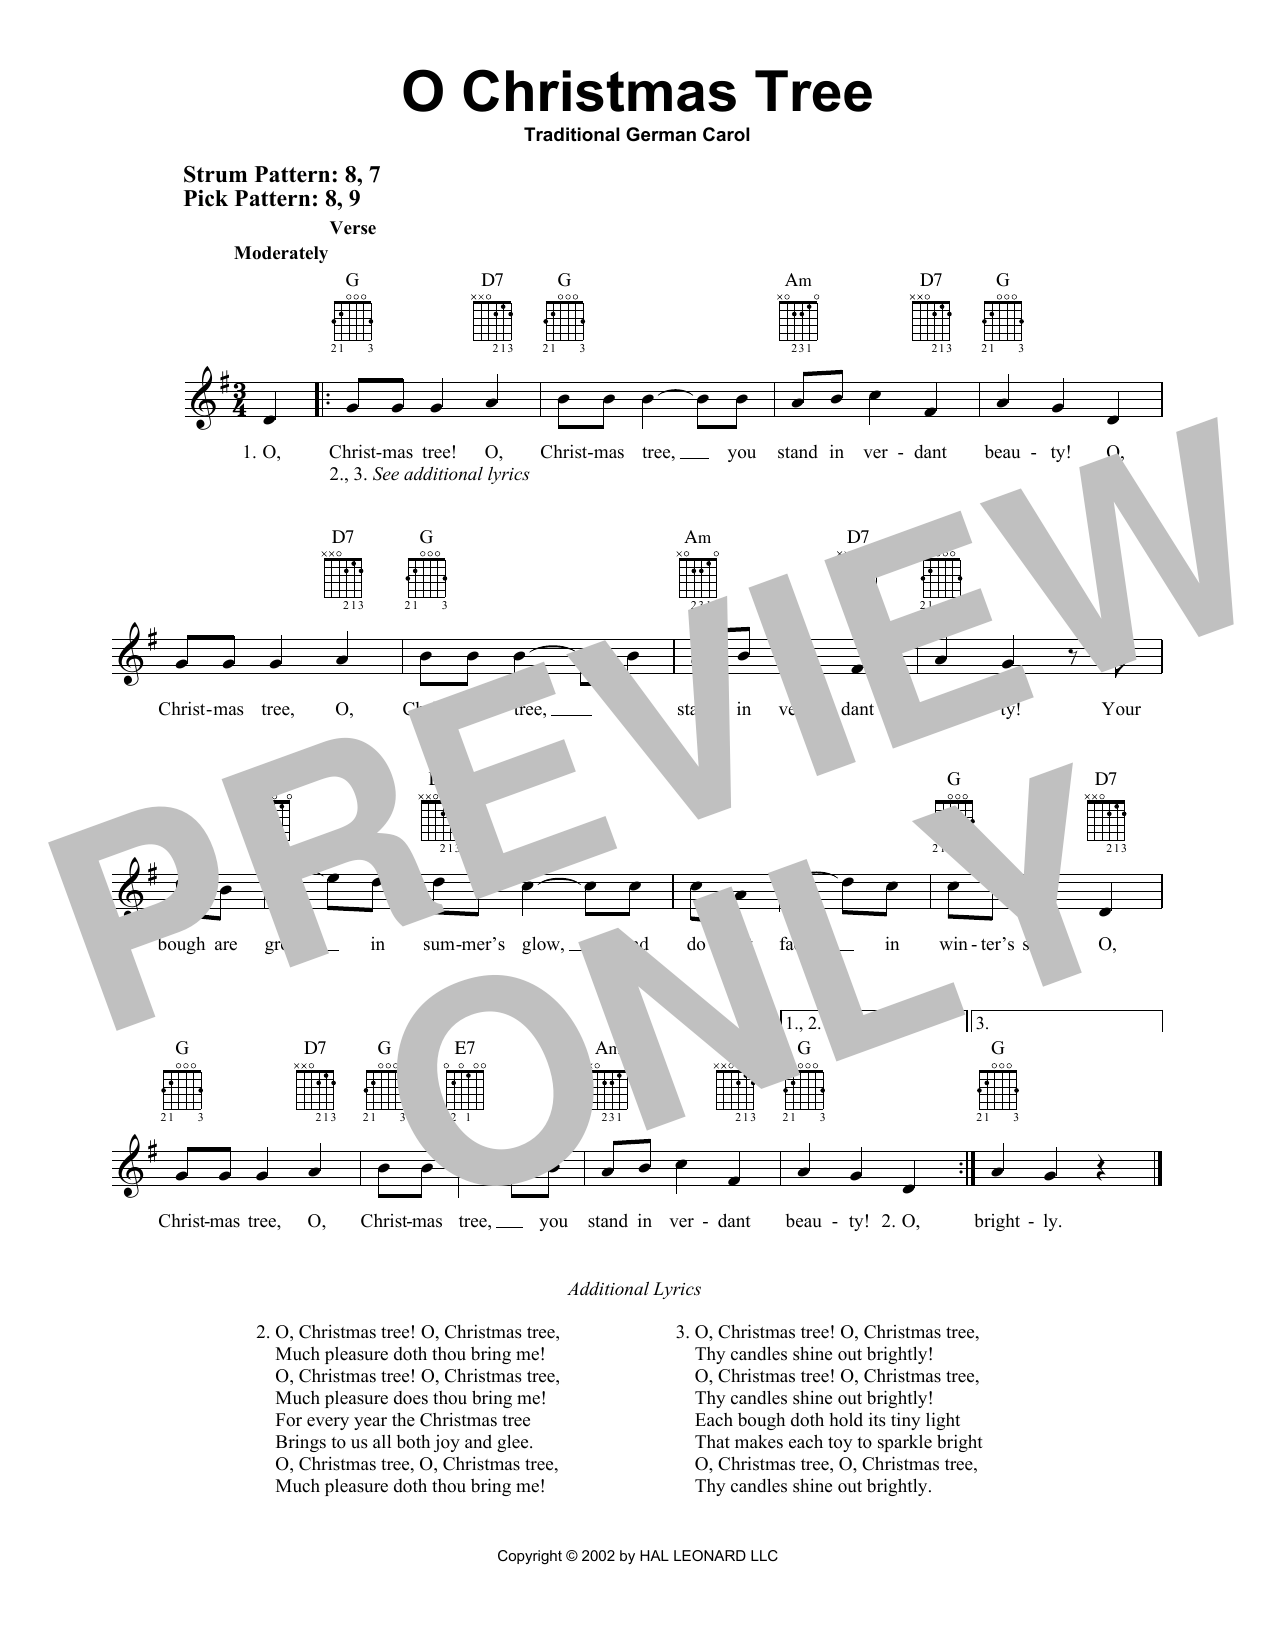 O Christmas Tree | Sheet Music Direct